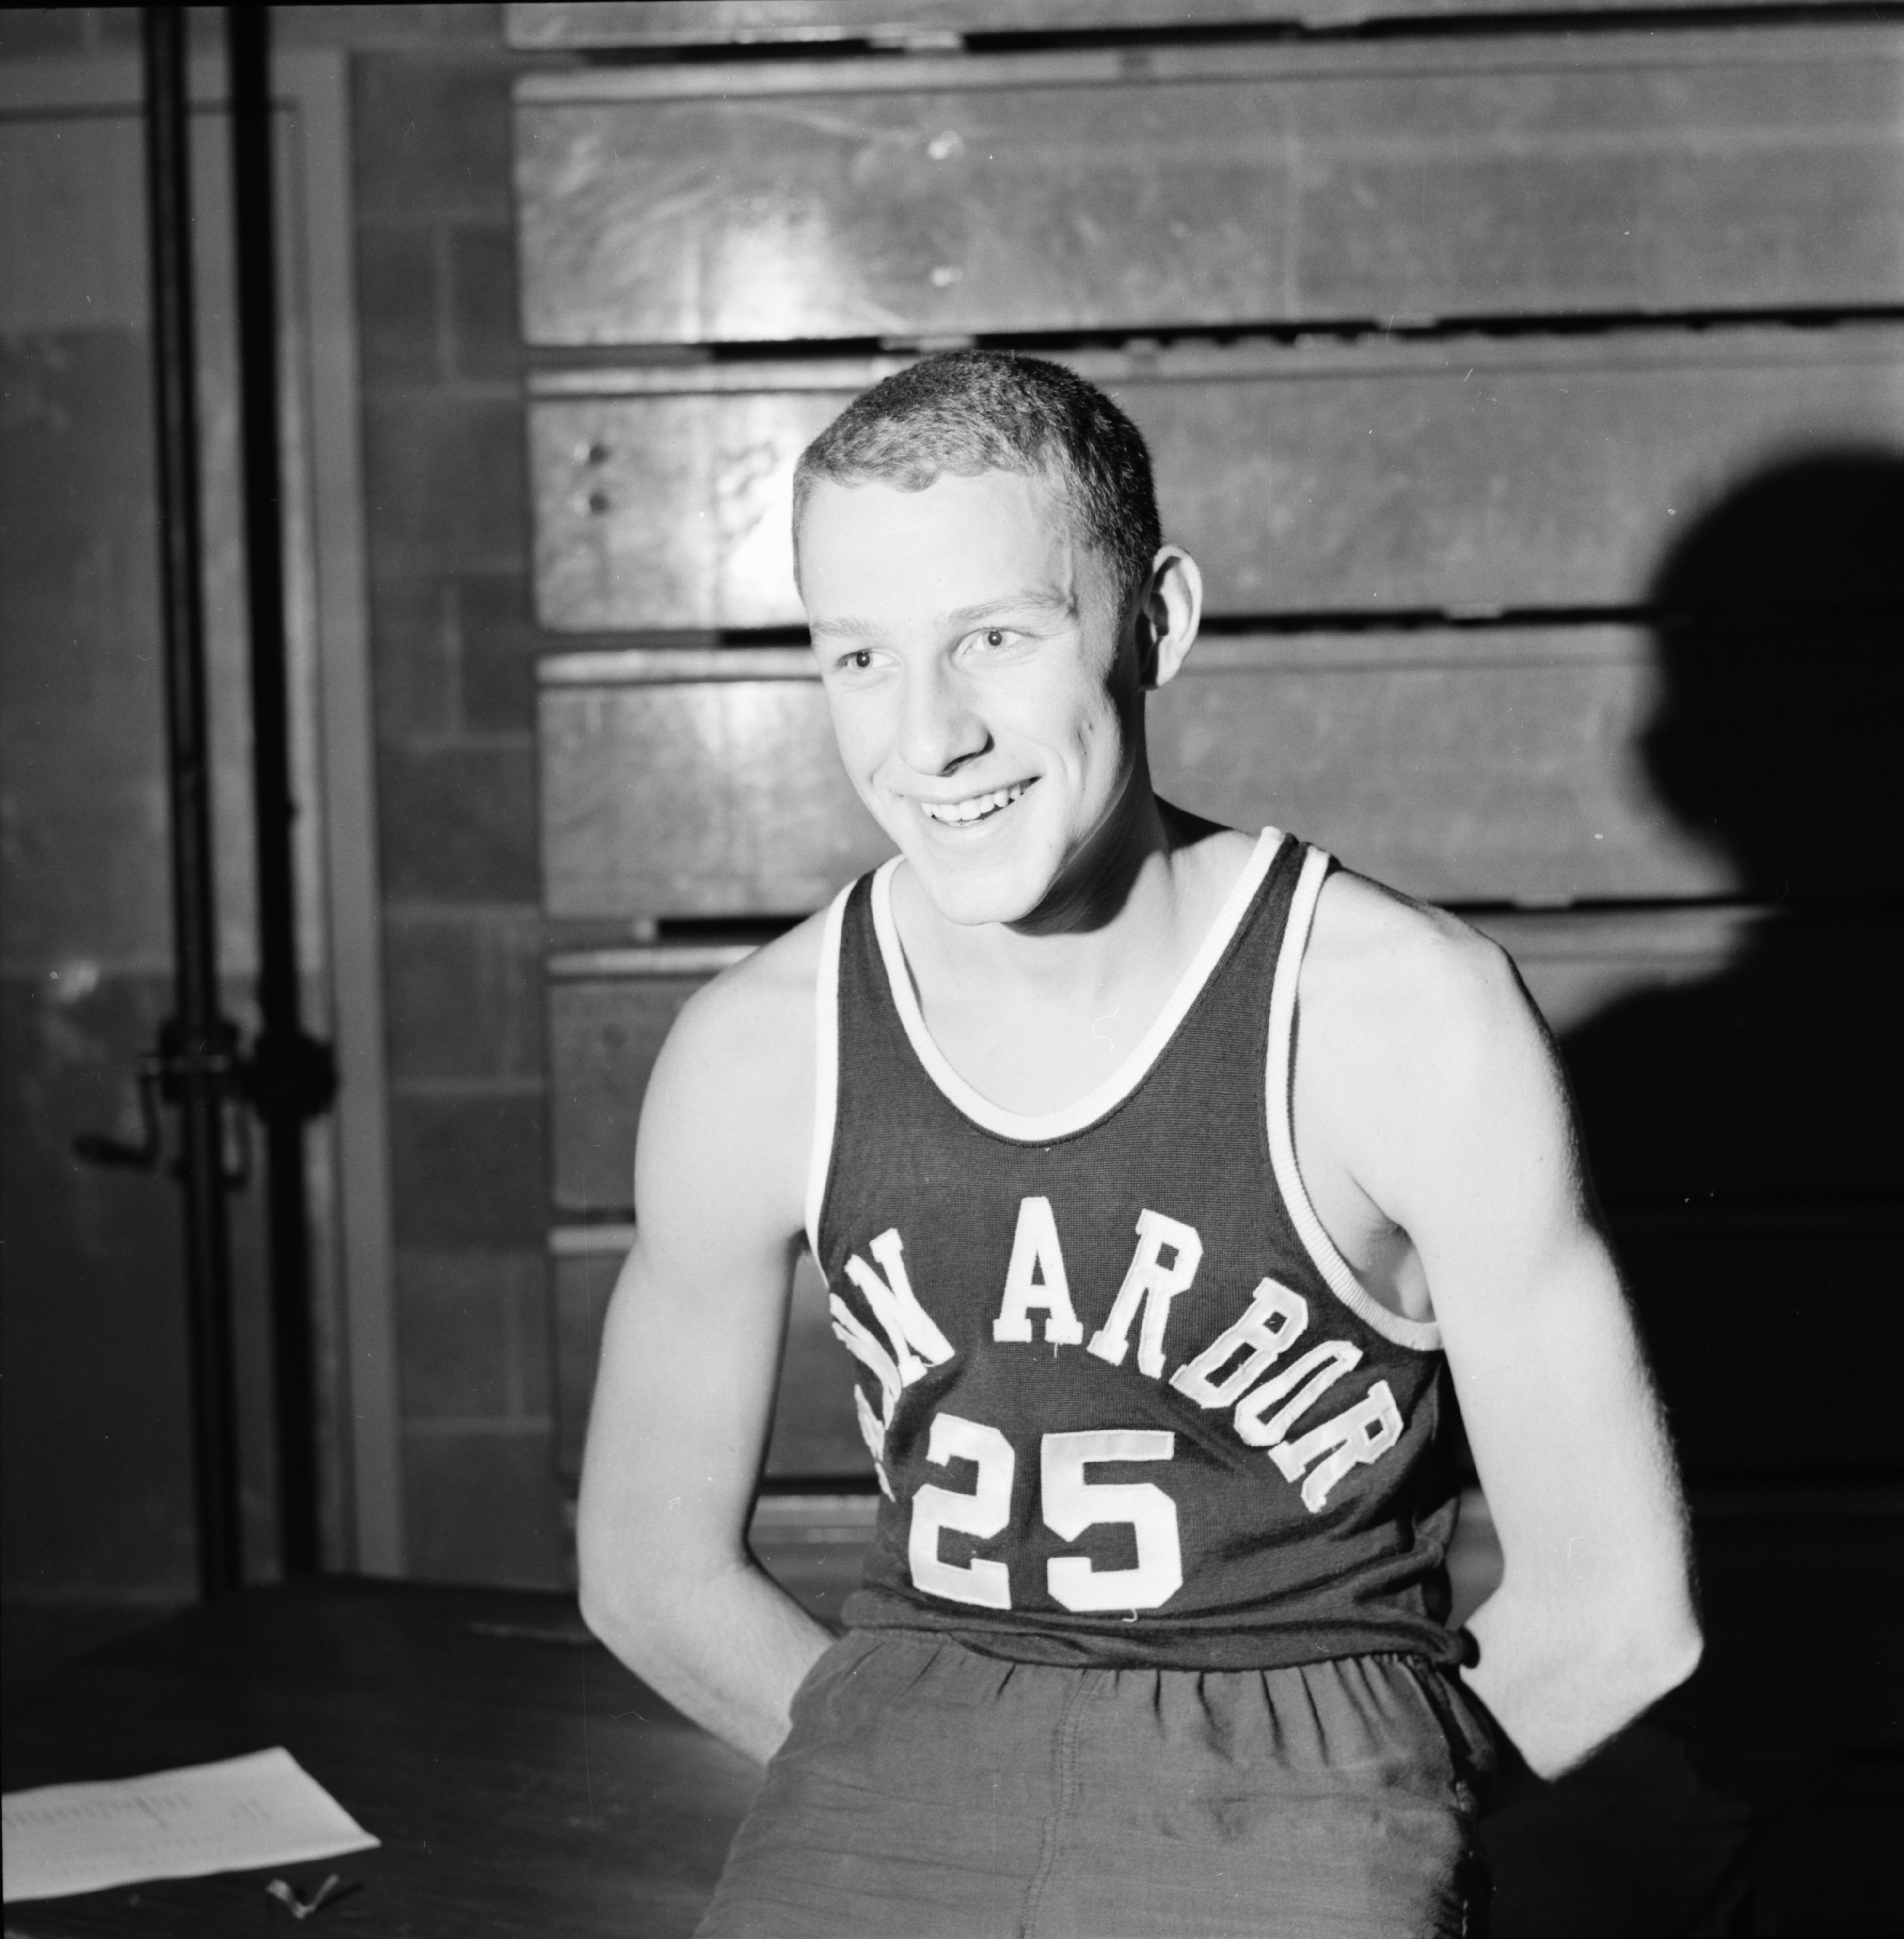 Al Stevens, 1963-1964 Ann Arbor High School basketball season, December 1963 image